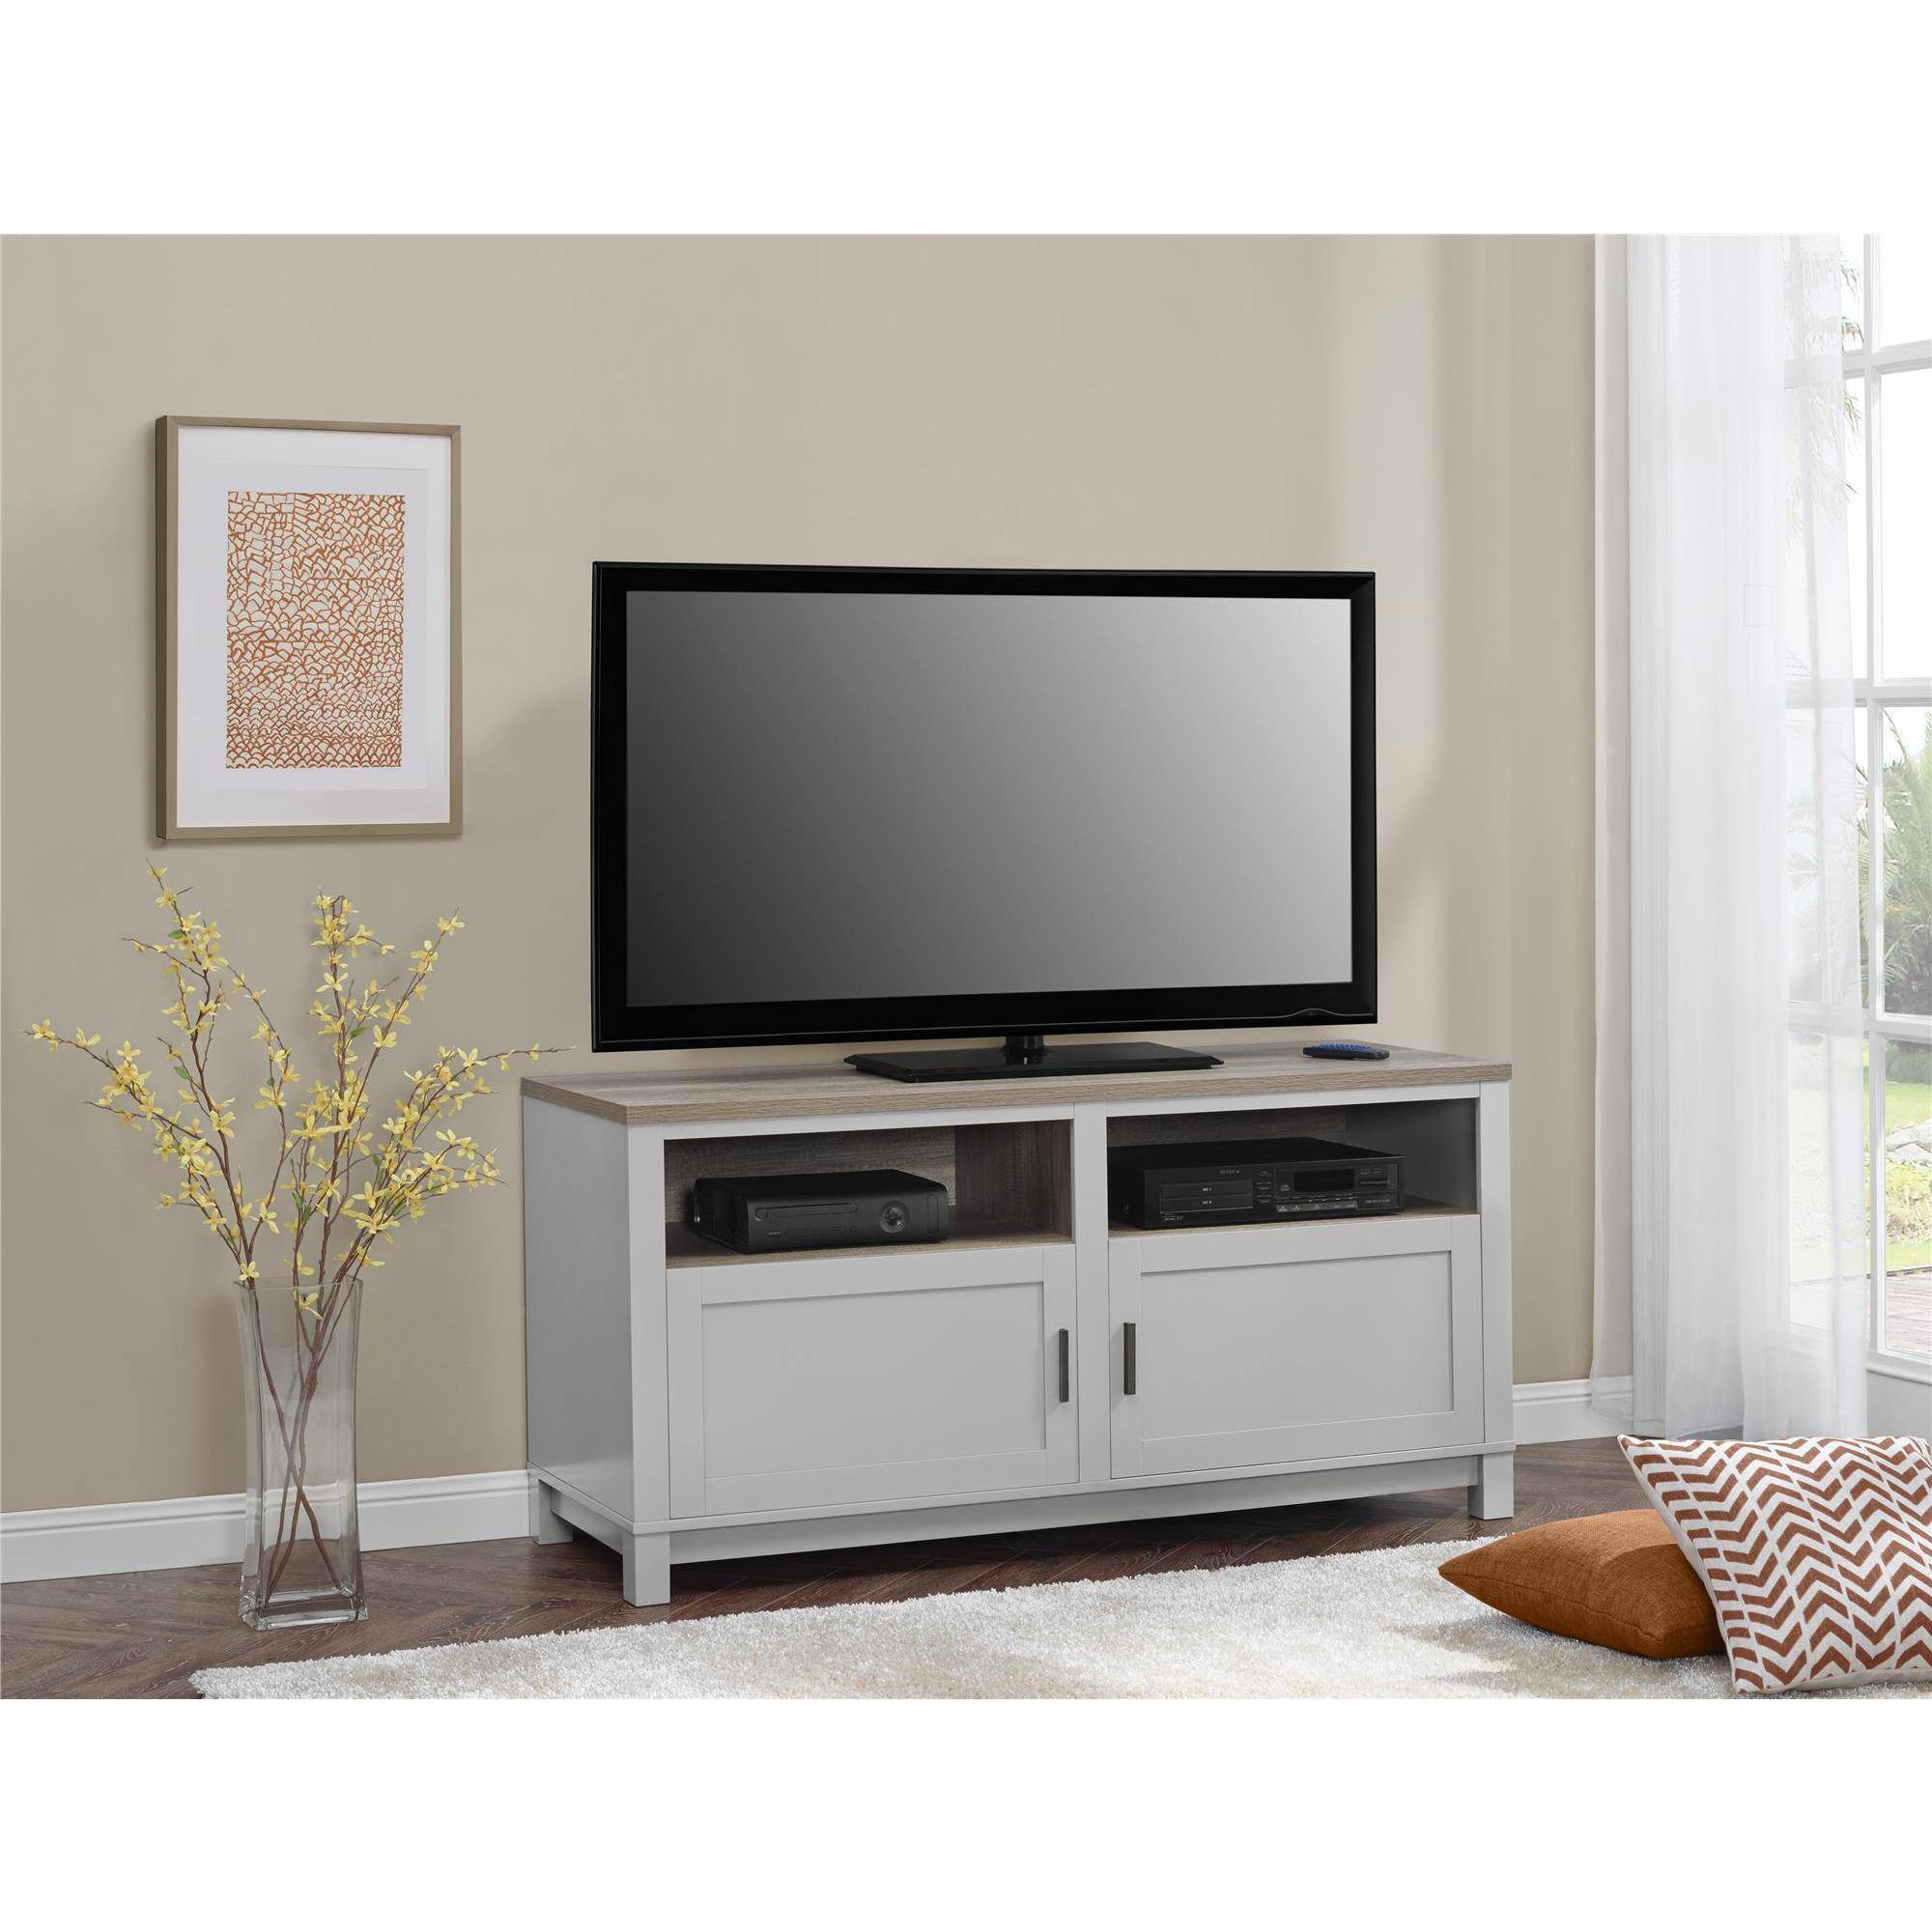 Better Homes And Gardens Langley Bay Tv Stand For Tvs Up To 60 within Grey Wood Tv Stands (Image 2 of 15)